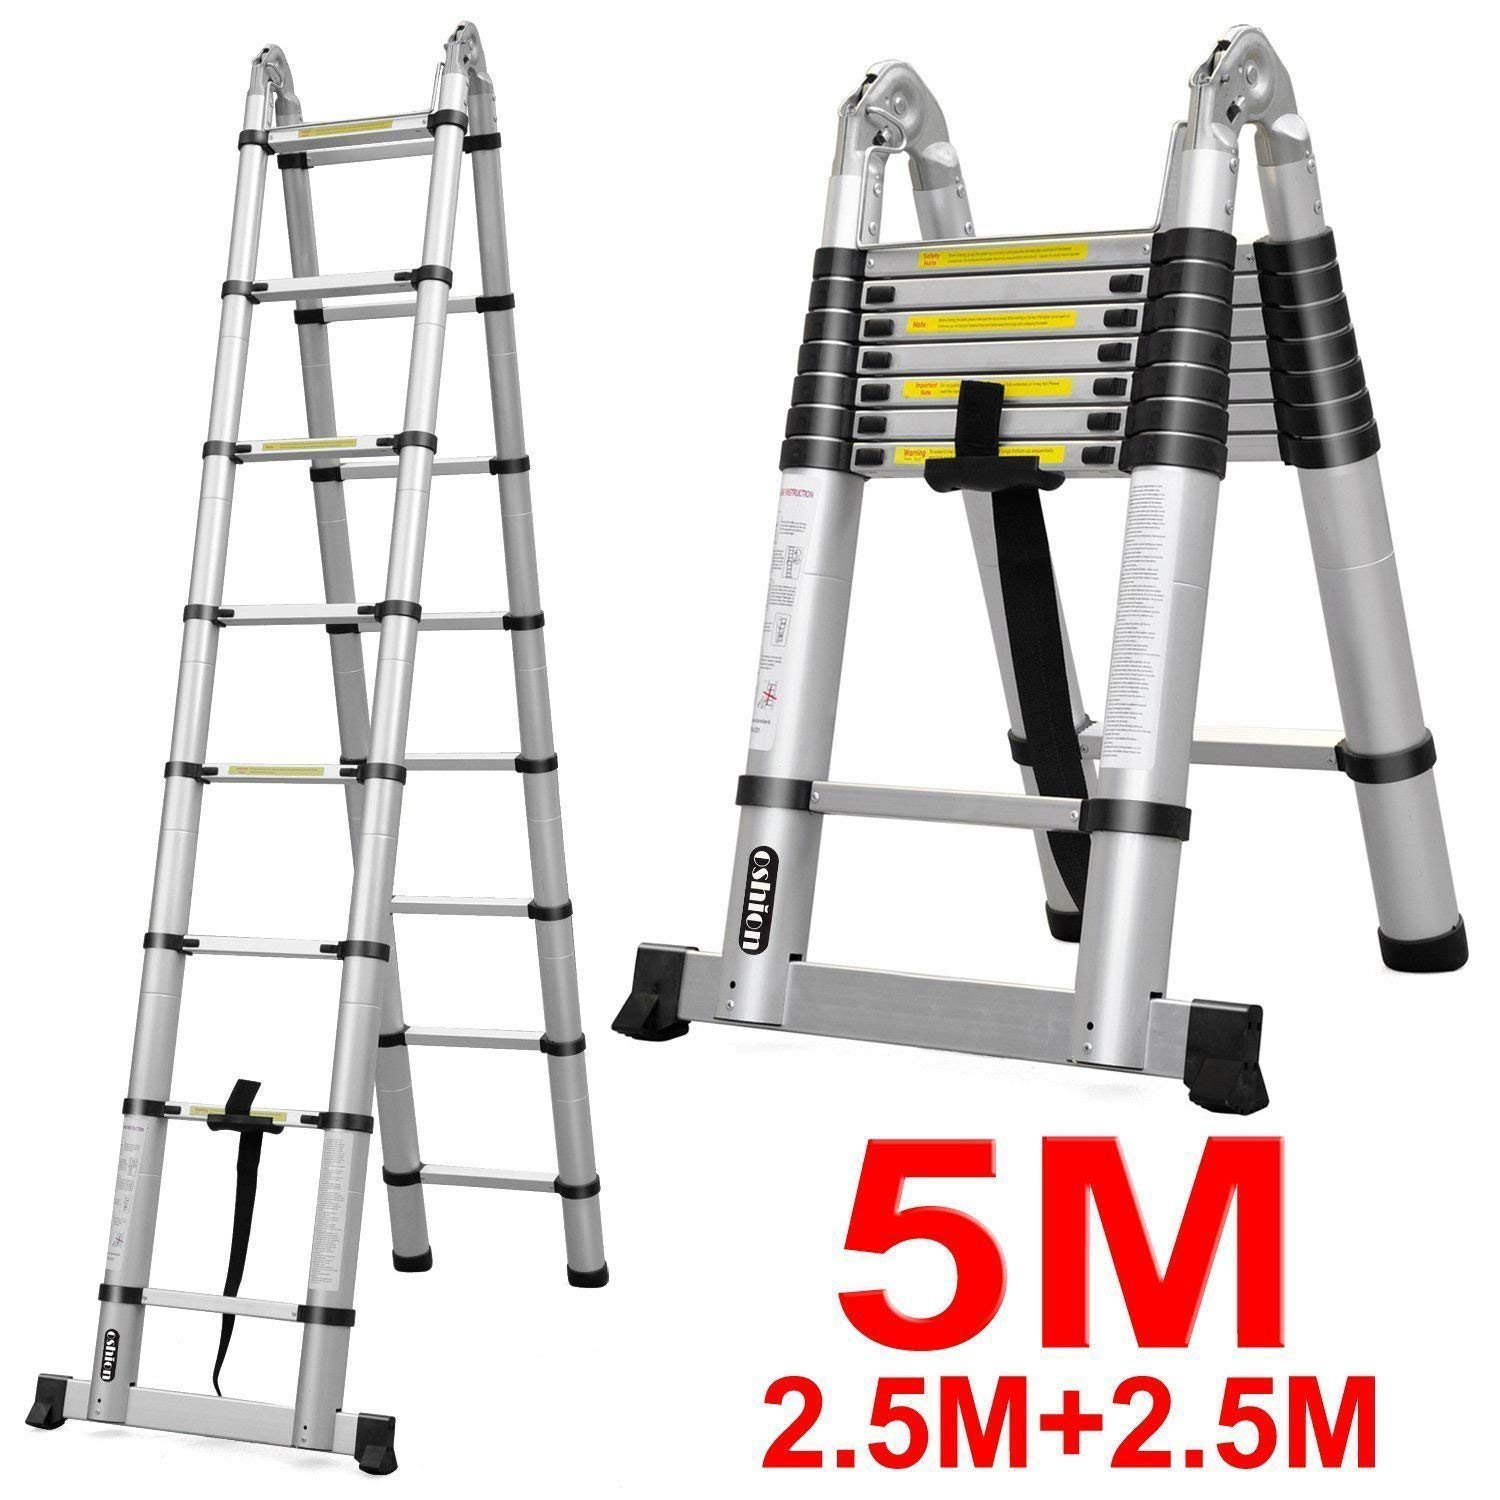 Luisladders 16.5 FT Aluminum Telescopic Extension Ladder Multi-Use Telescoping Ladder 330 Pound Capacity